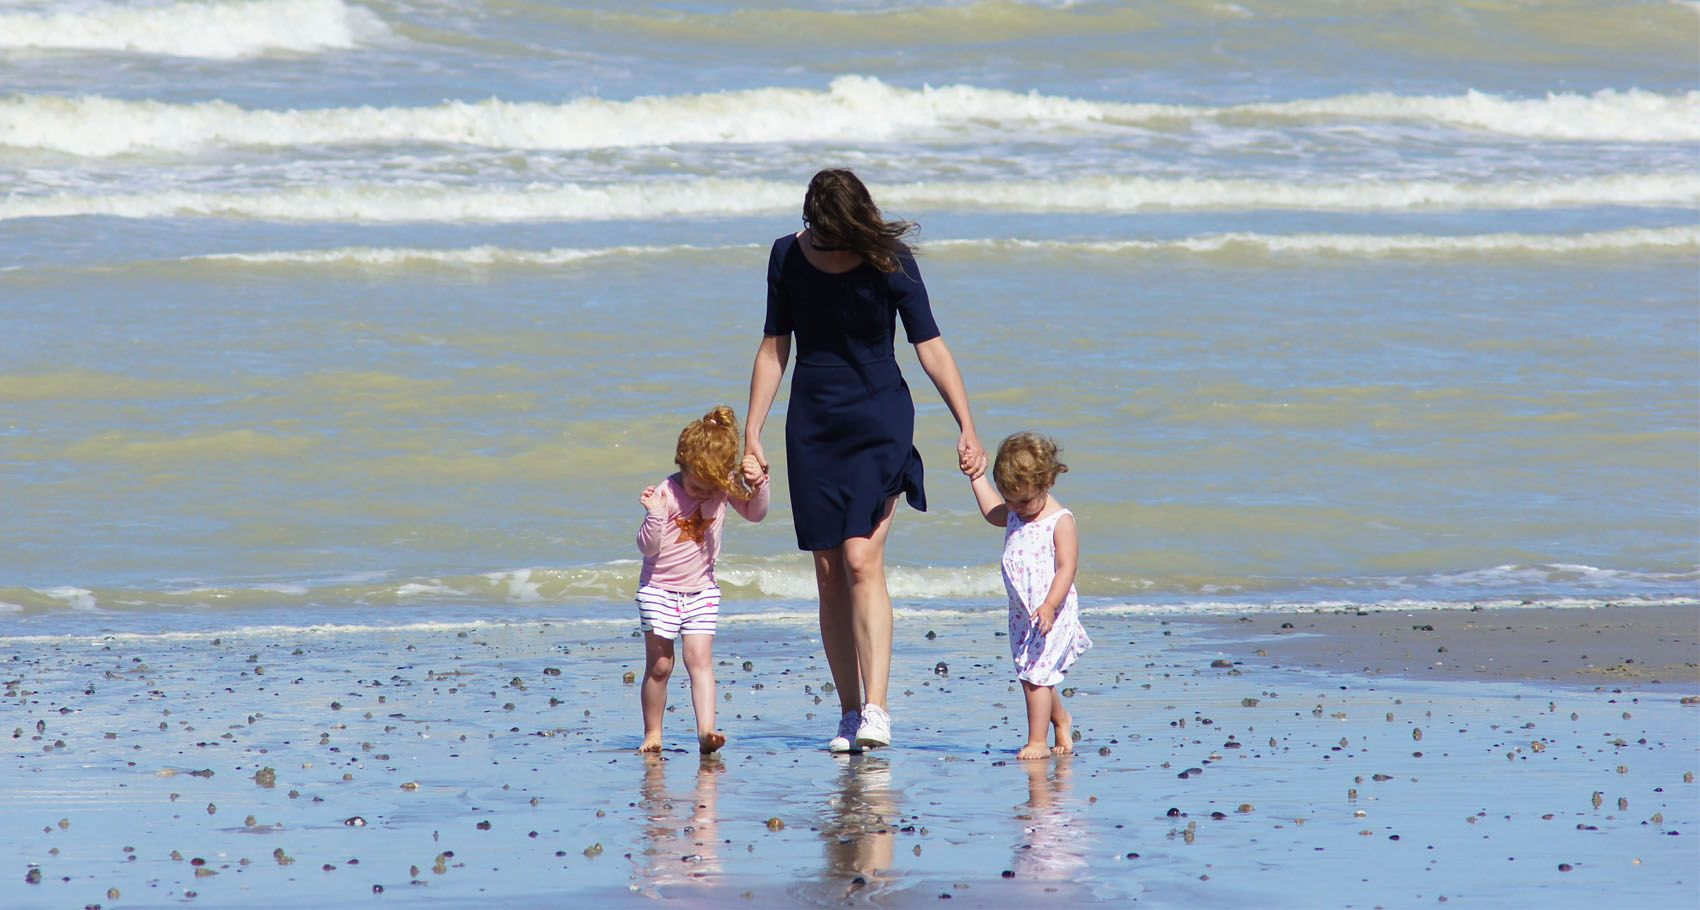 Family Vacations Can Leave A Long-Lasting Impact On A Kid's Happiness